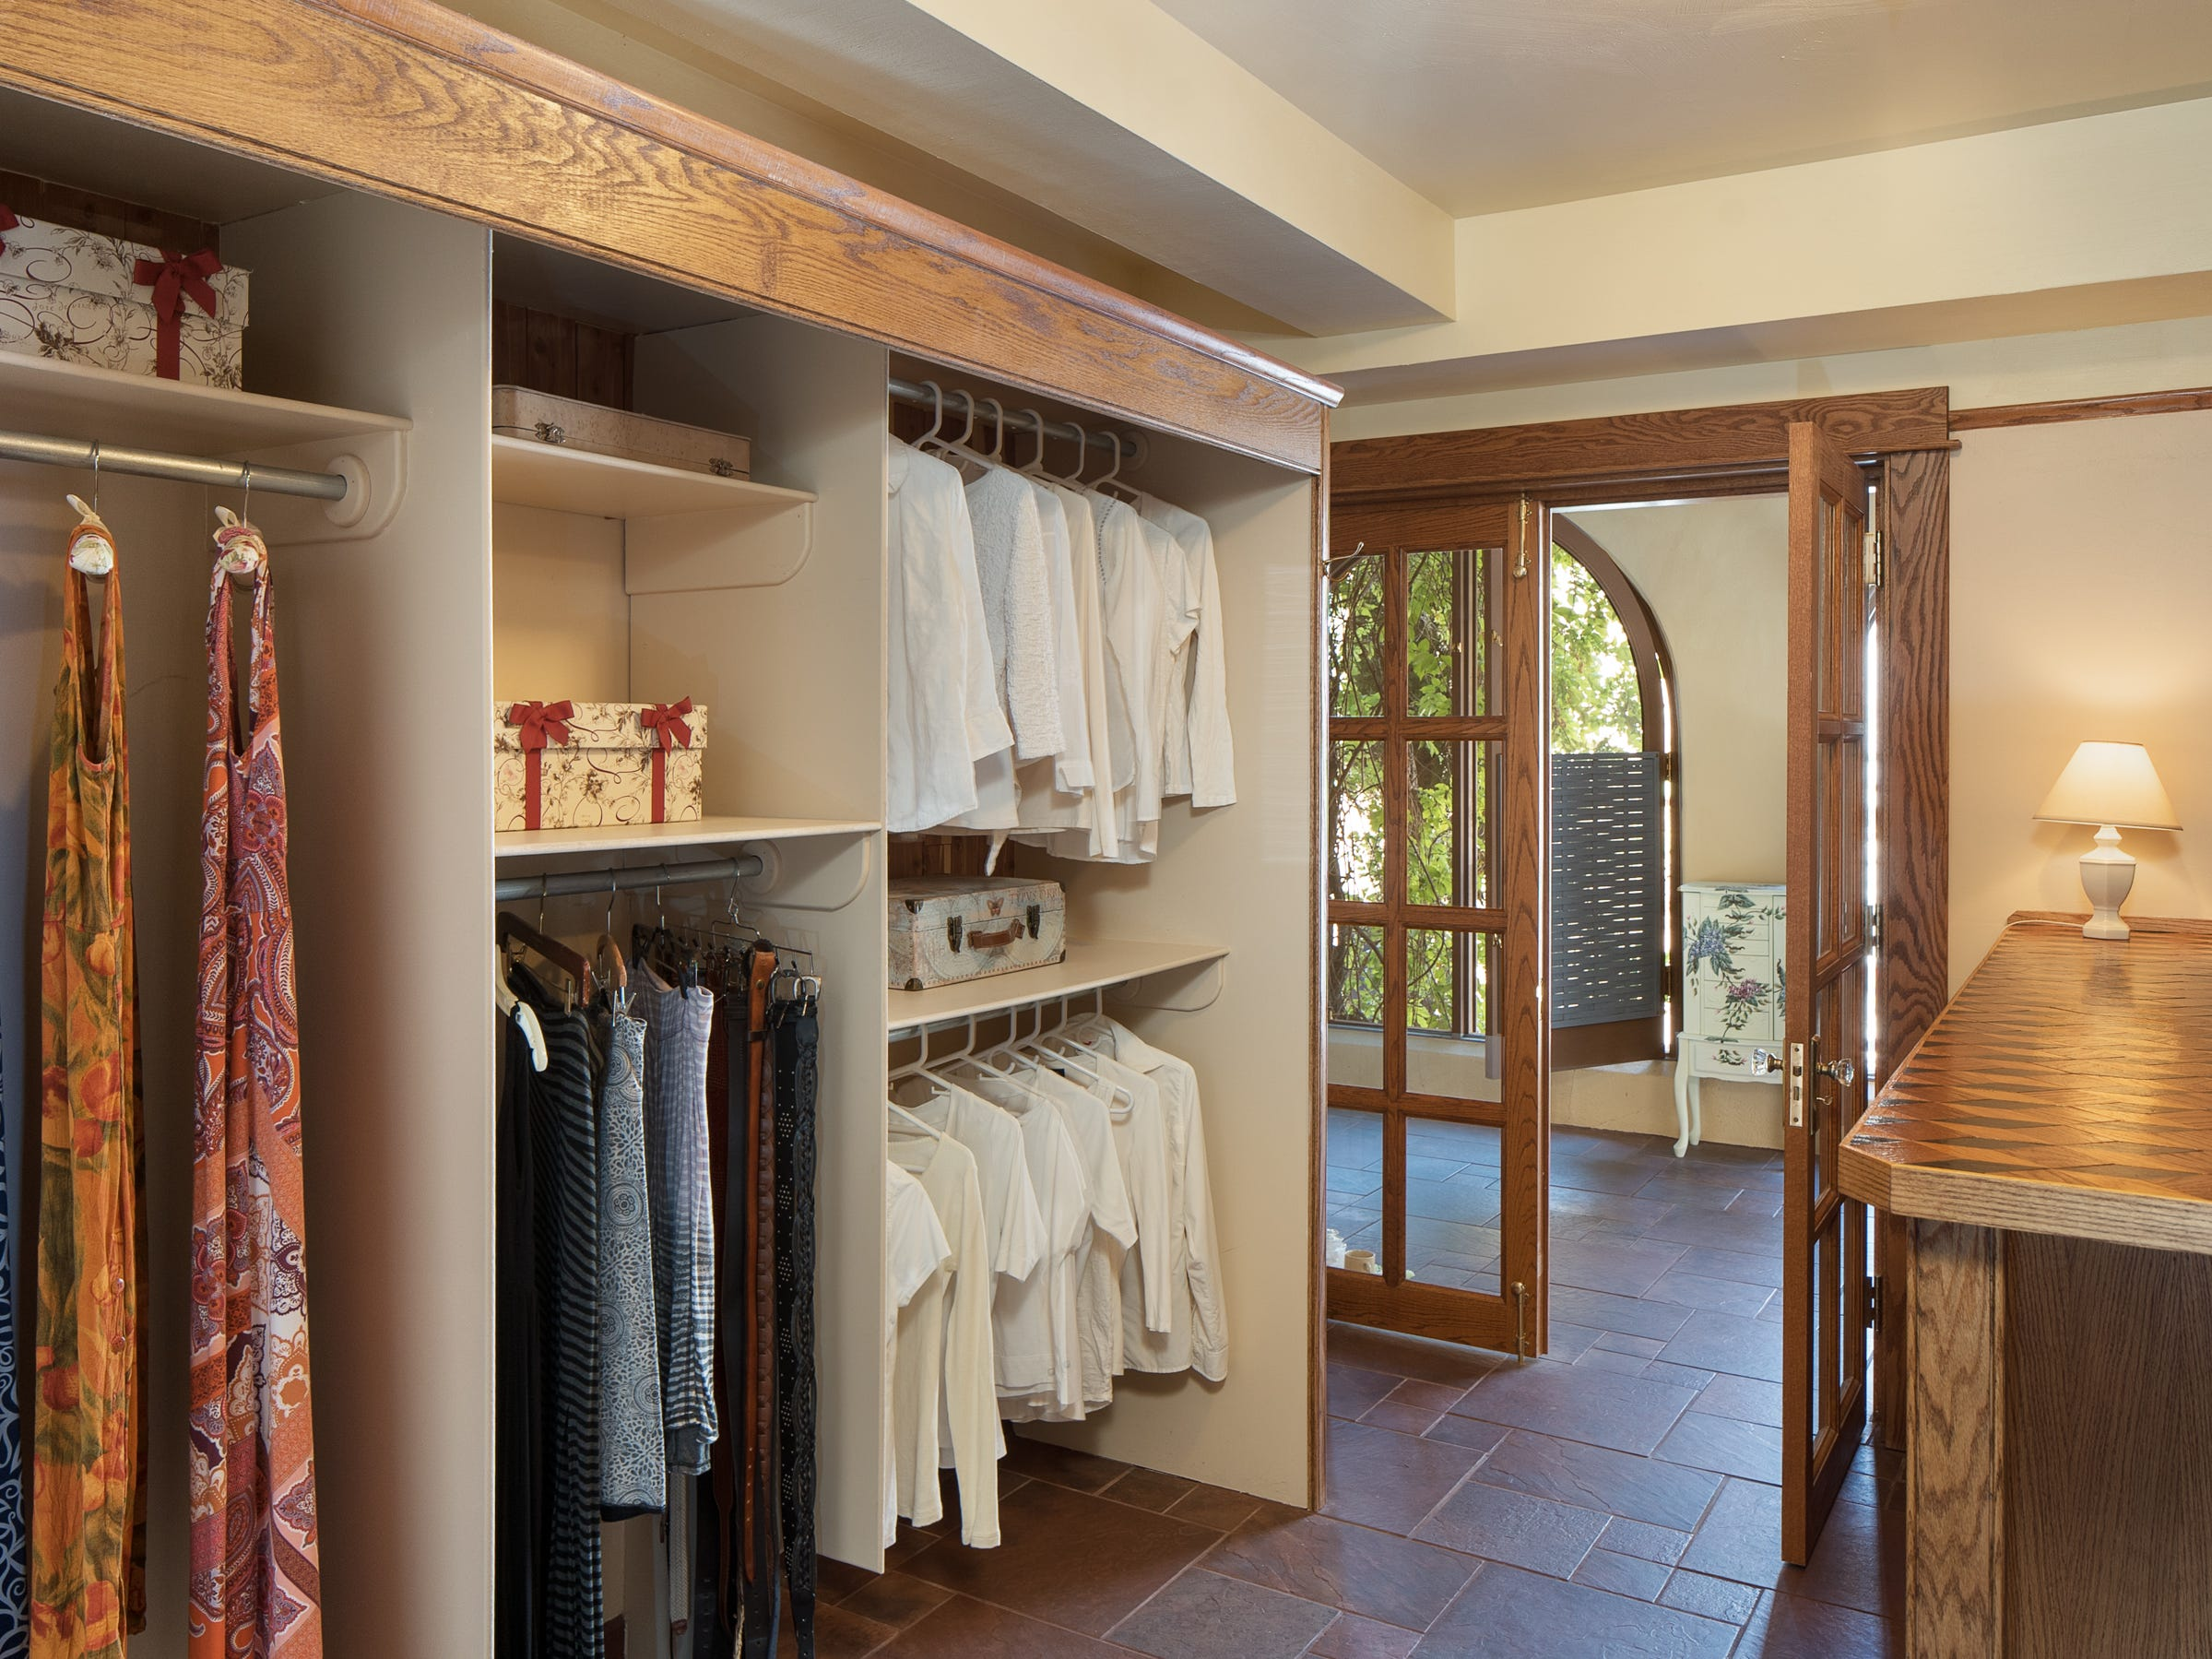 The master bedroom closet is seen at the 100-year-old former Little Daisy Hotel in Jerome, which was later turned into a single-family home and is now on the market.